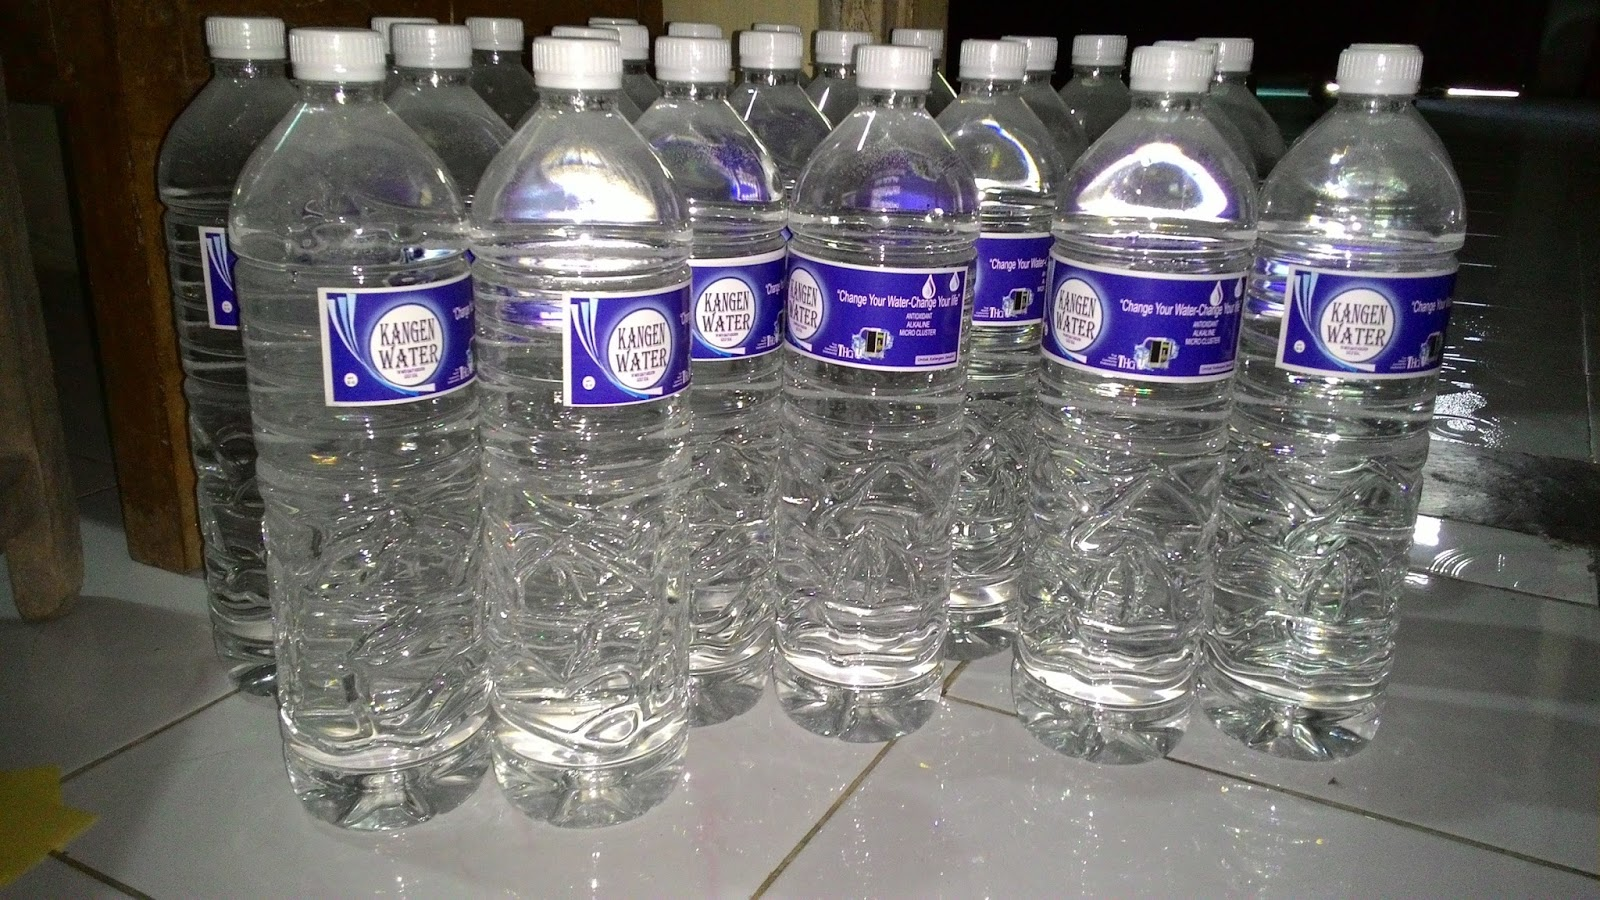 1 Galon Berapa Liter Air Kangen Water Air Kangen Water Ph 11 Air Kangen Water